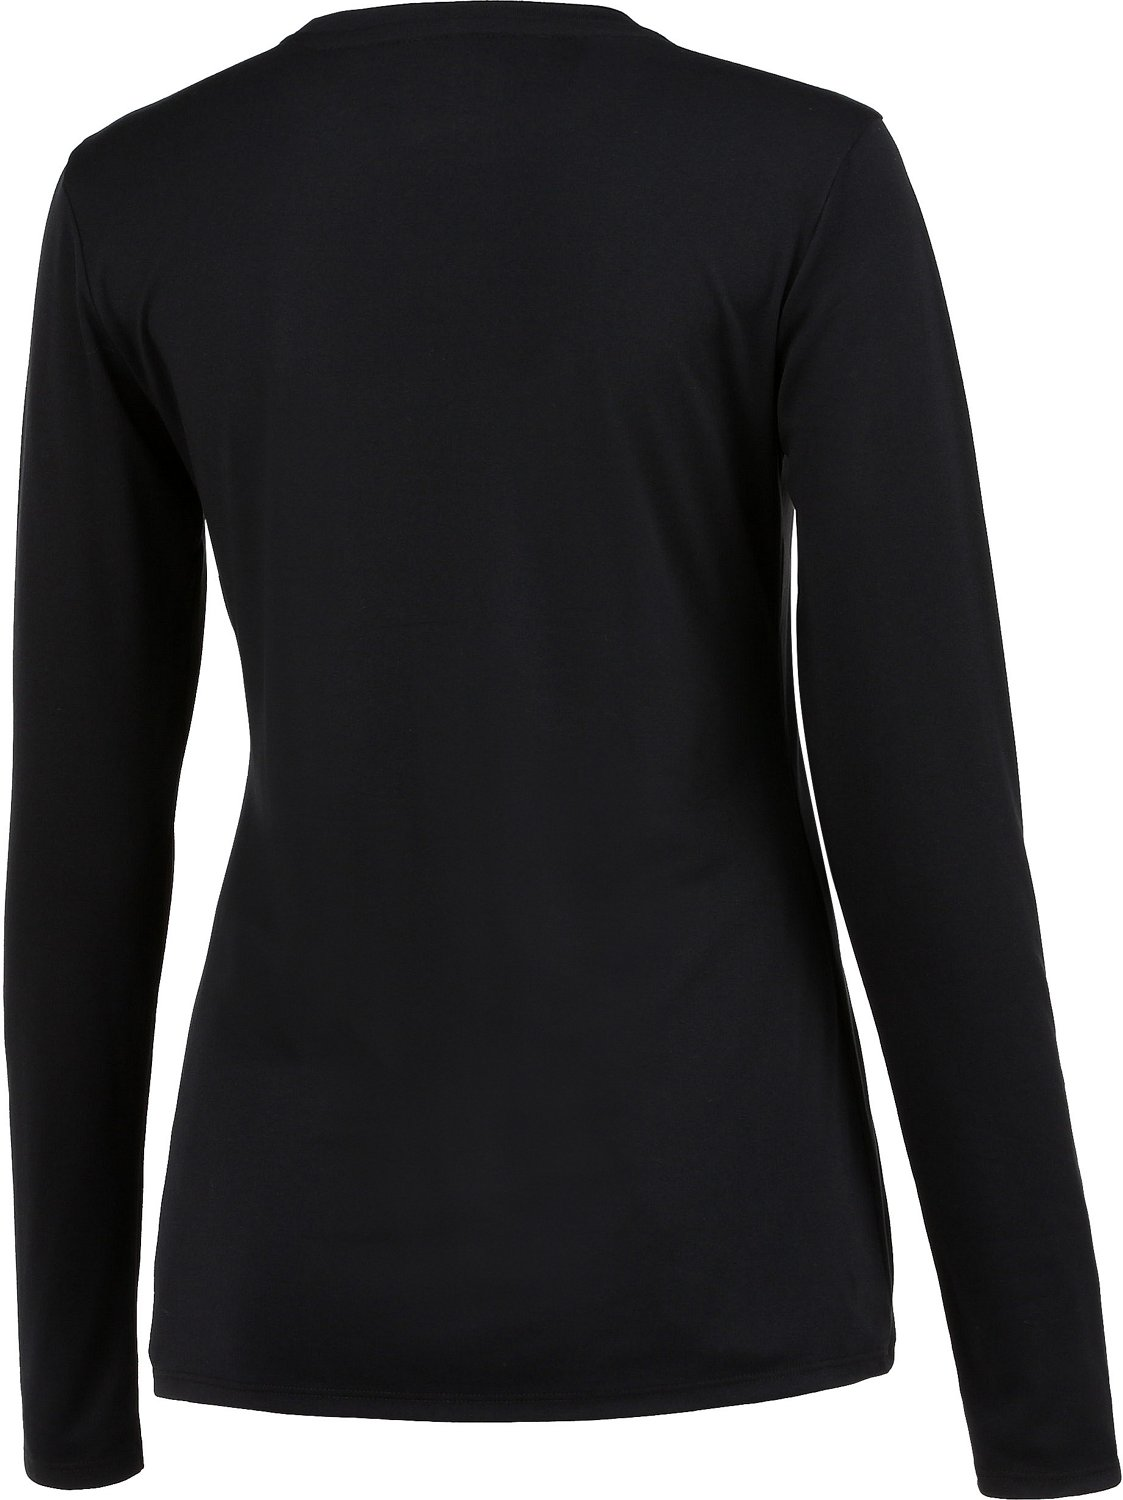 BCG Women's Turbo Long-Sleeve Shirt - view number 2